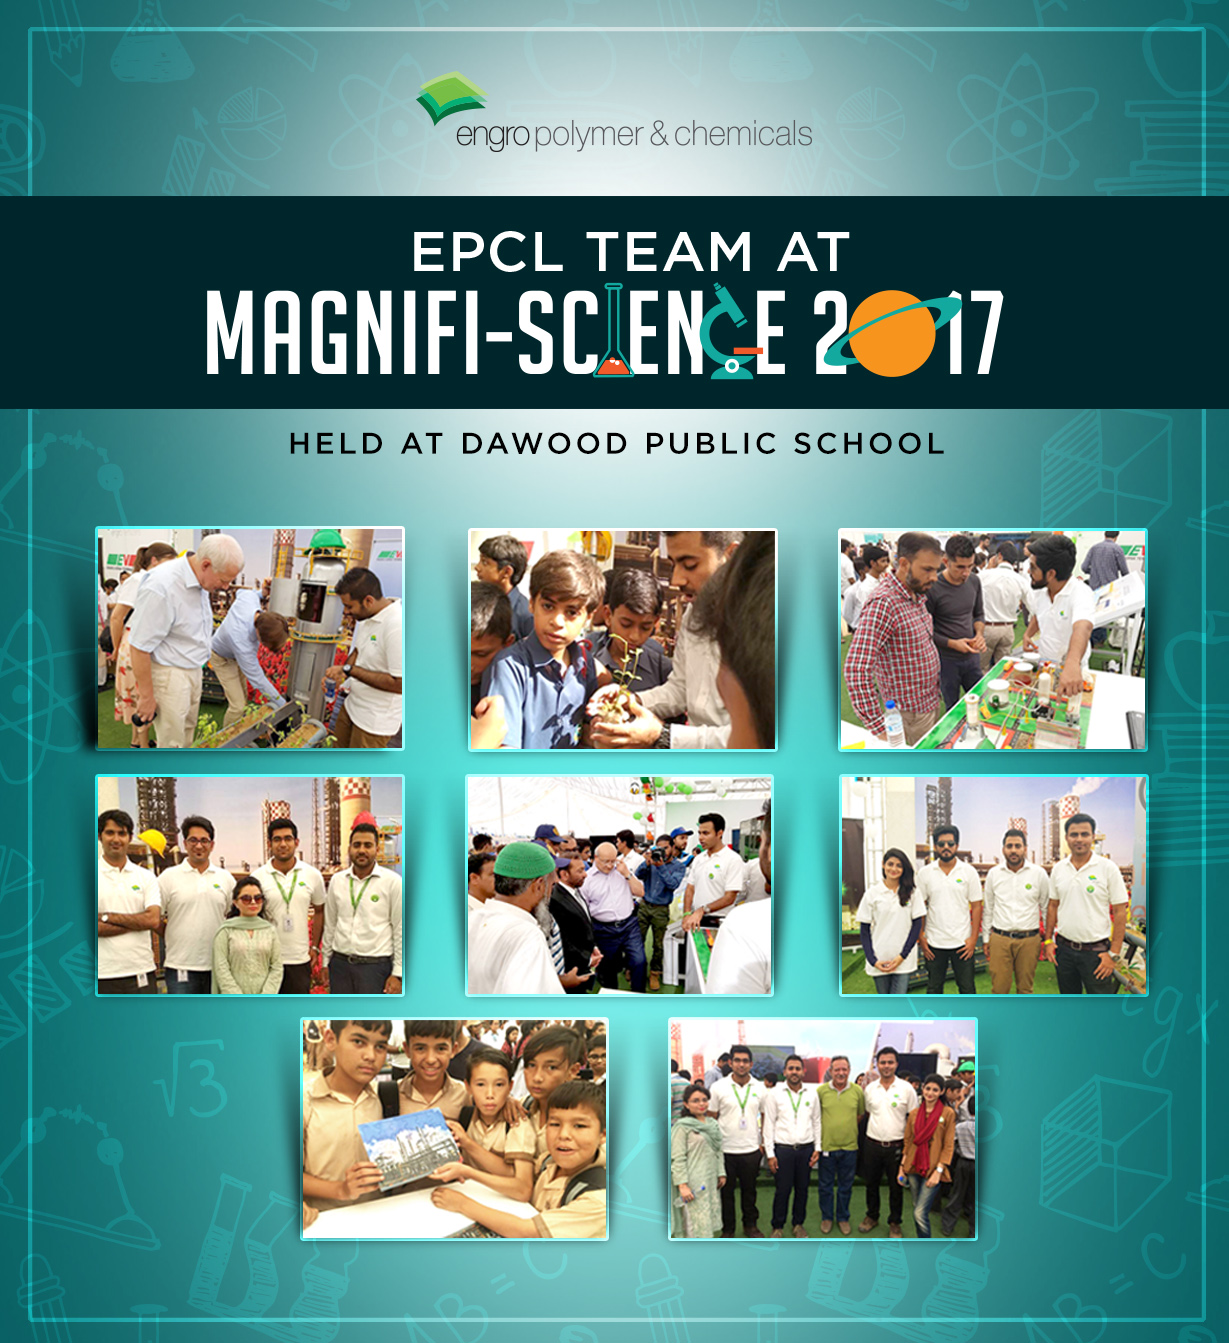 EPCL at MagnifiScience 2017